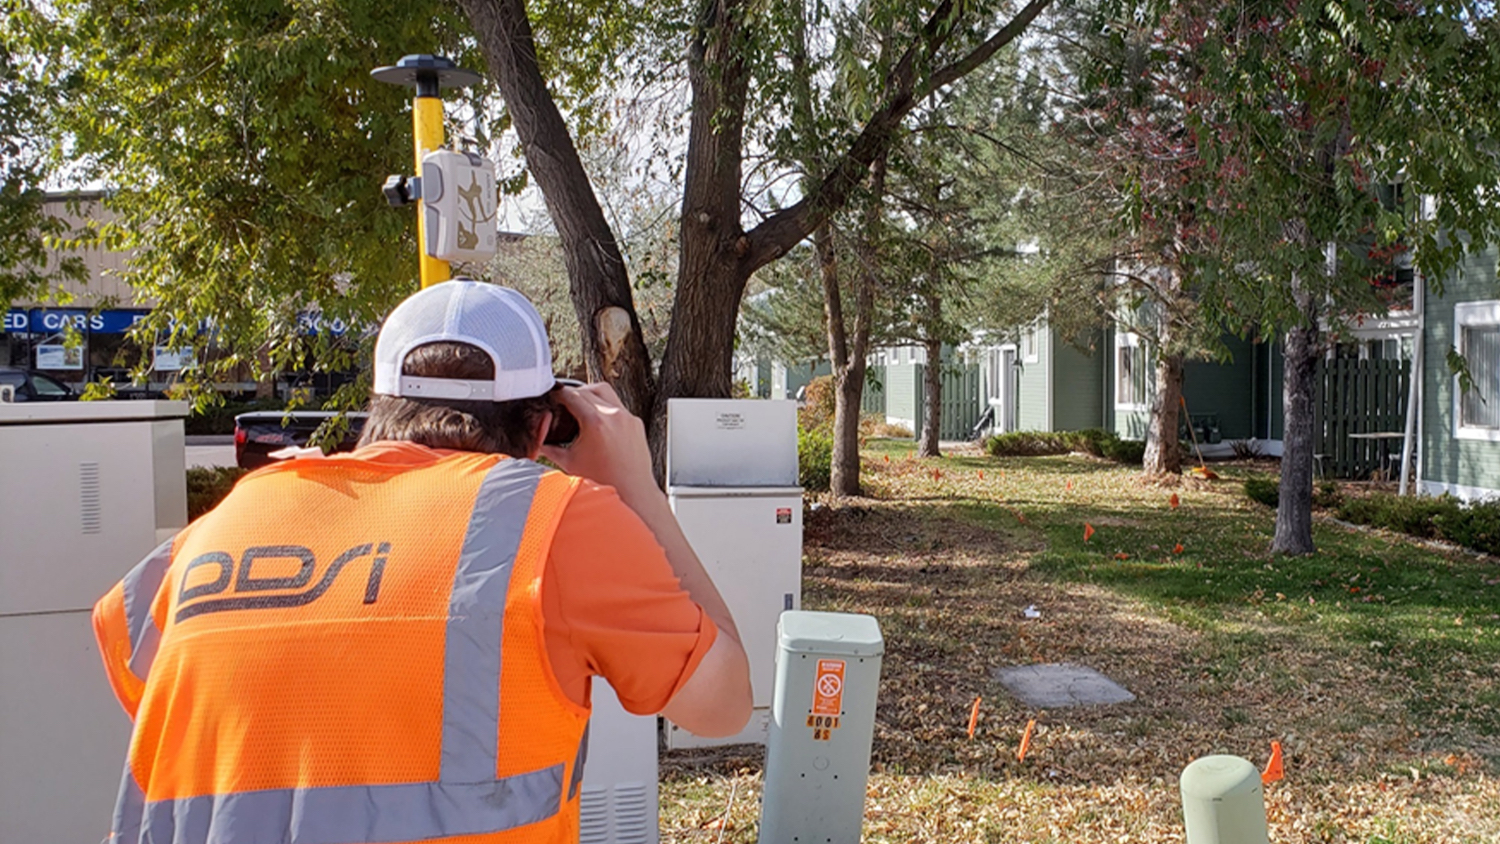 DDSI uses Eos Laser Mapping solution with Arrow Gold, LTI TruPulse 200X, and ArcGIS Collector to map mixed utility assets (electric, telco, water) for client projects